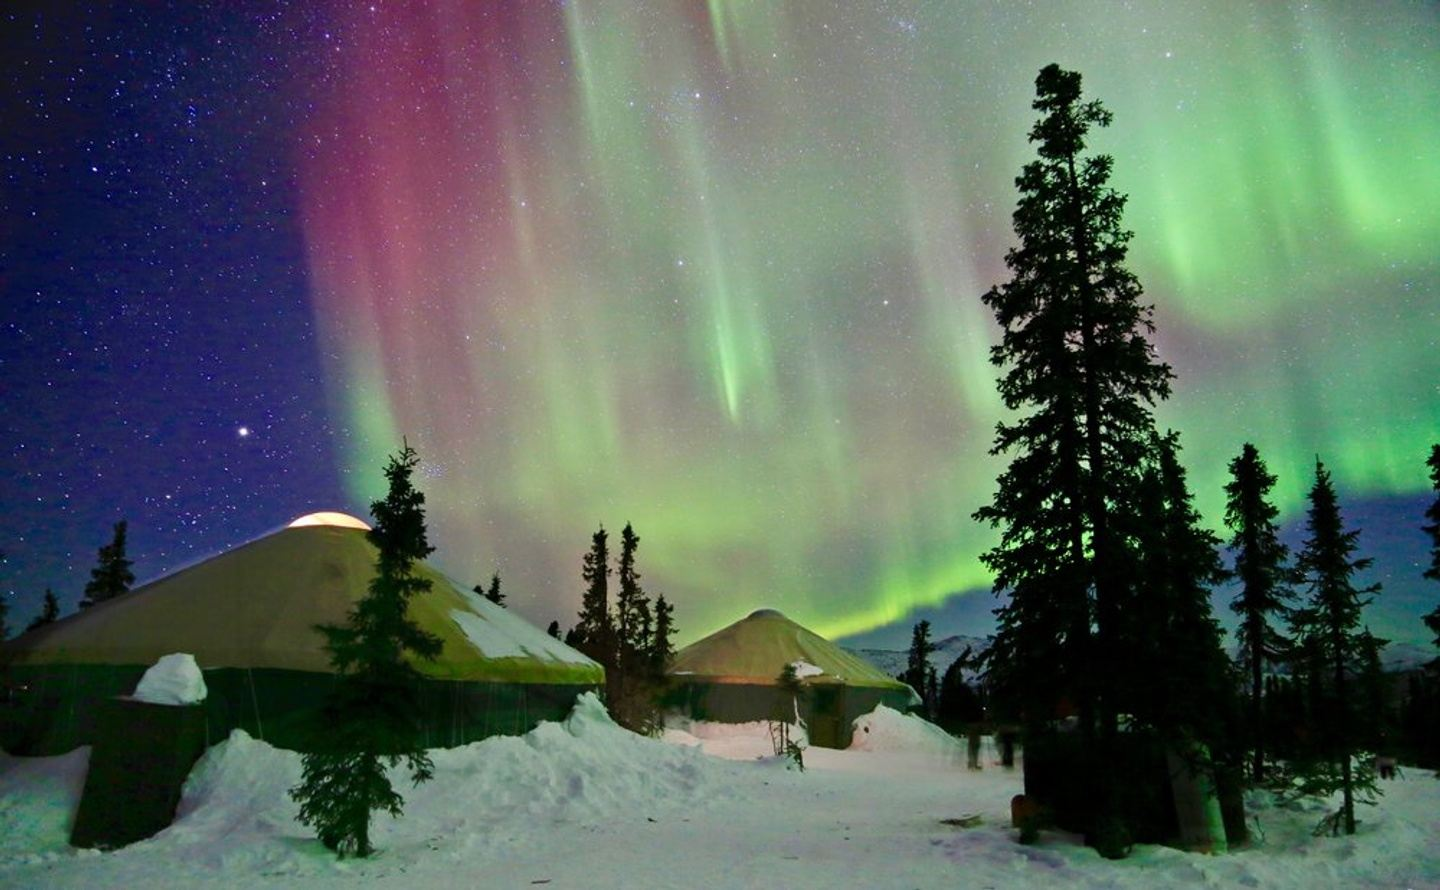 Chena Hot Springs and the Northern Lights